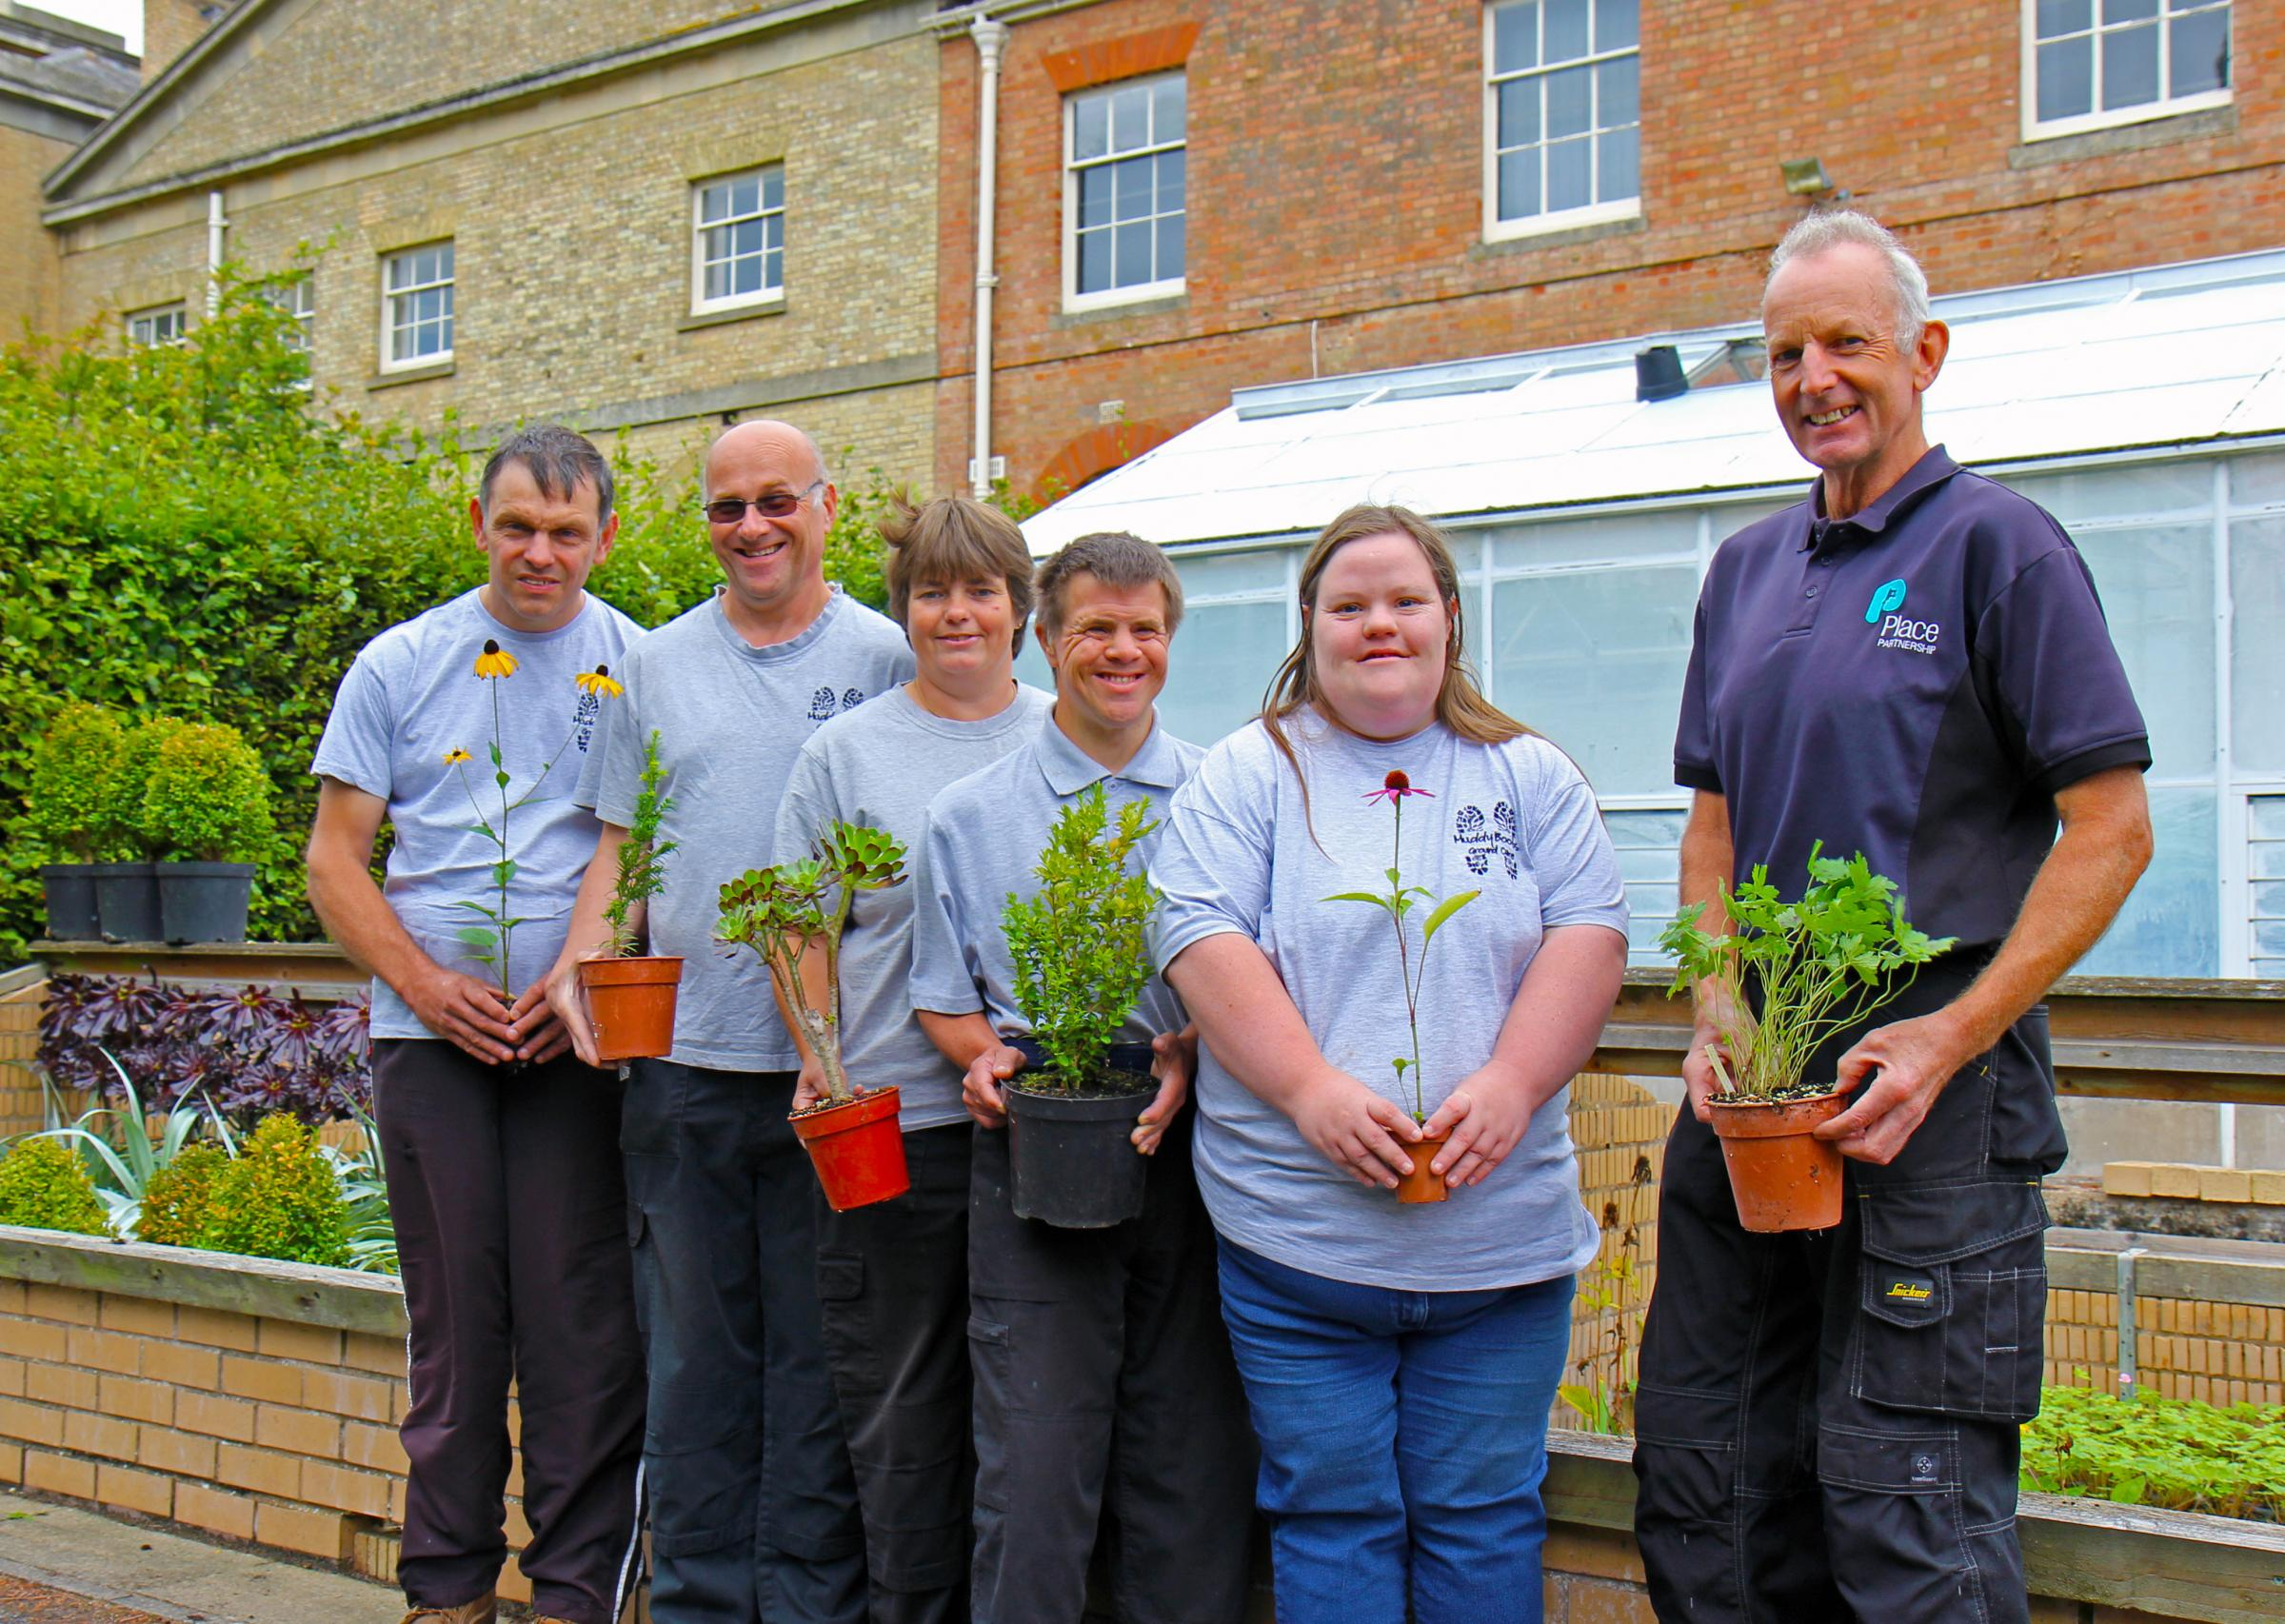 Place Partnership's head gardener Stuart Reading (Right) with members of Muddy Boots